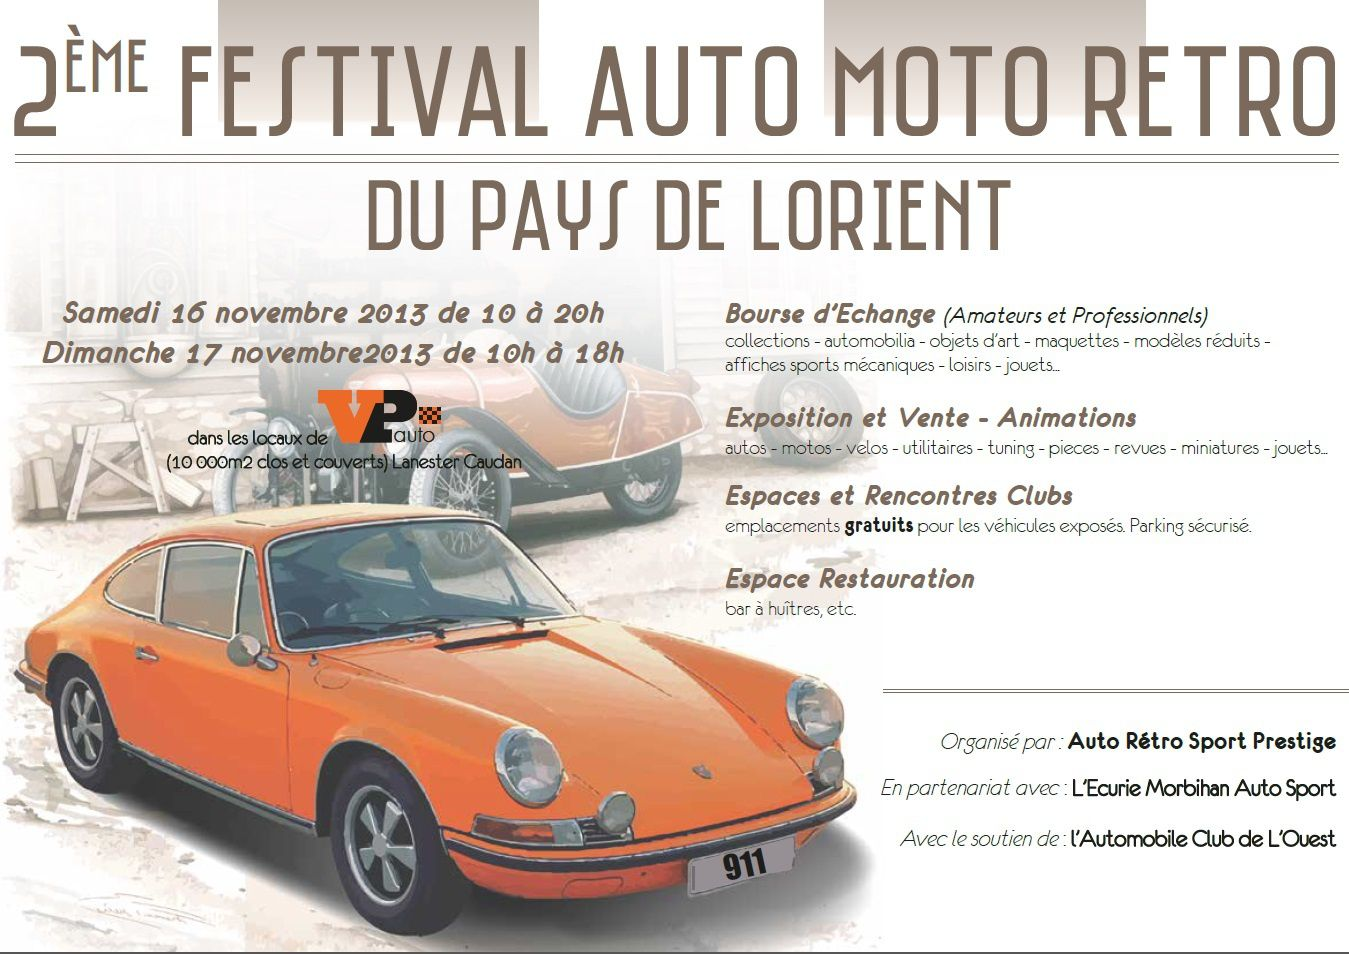 2 festival auto r tro de lorient 16 17 novembre. Black Bedroom Furniture Sets. Home Design Ideas